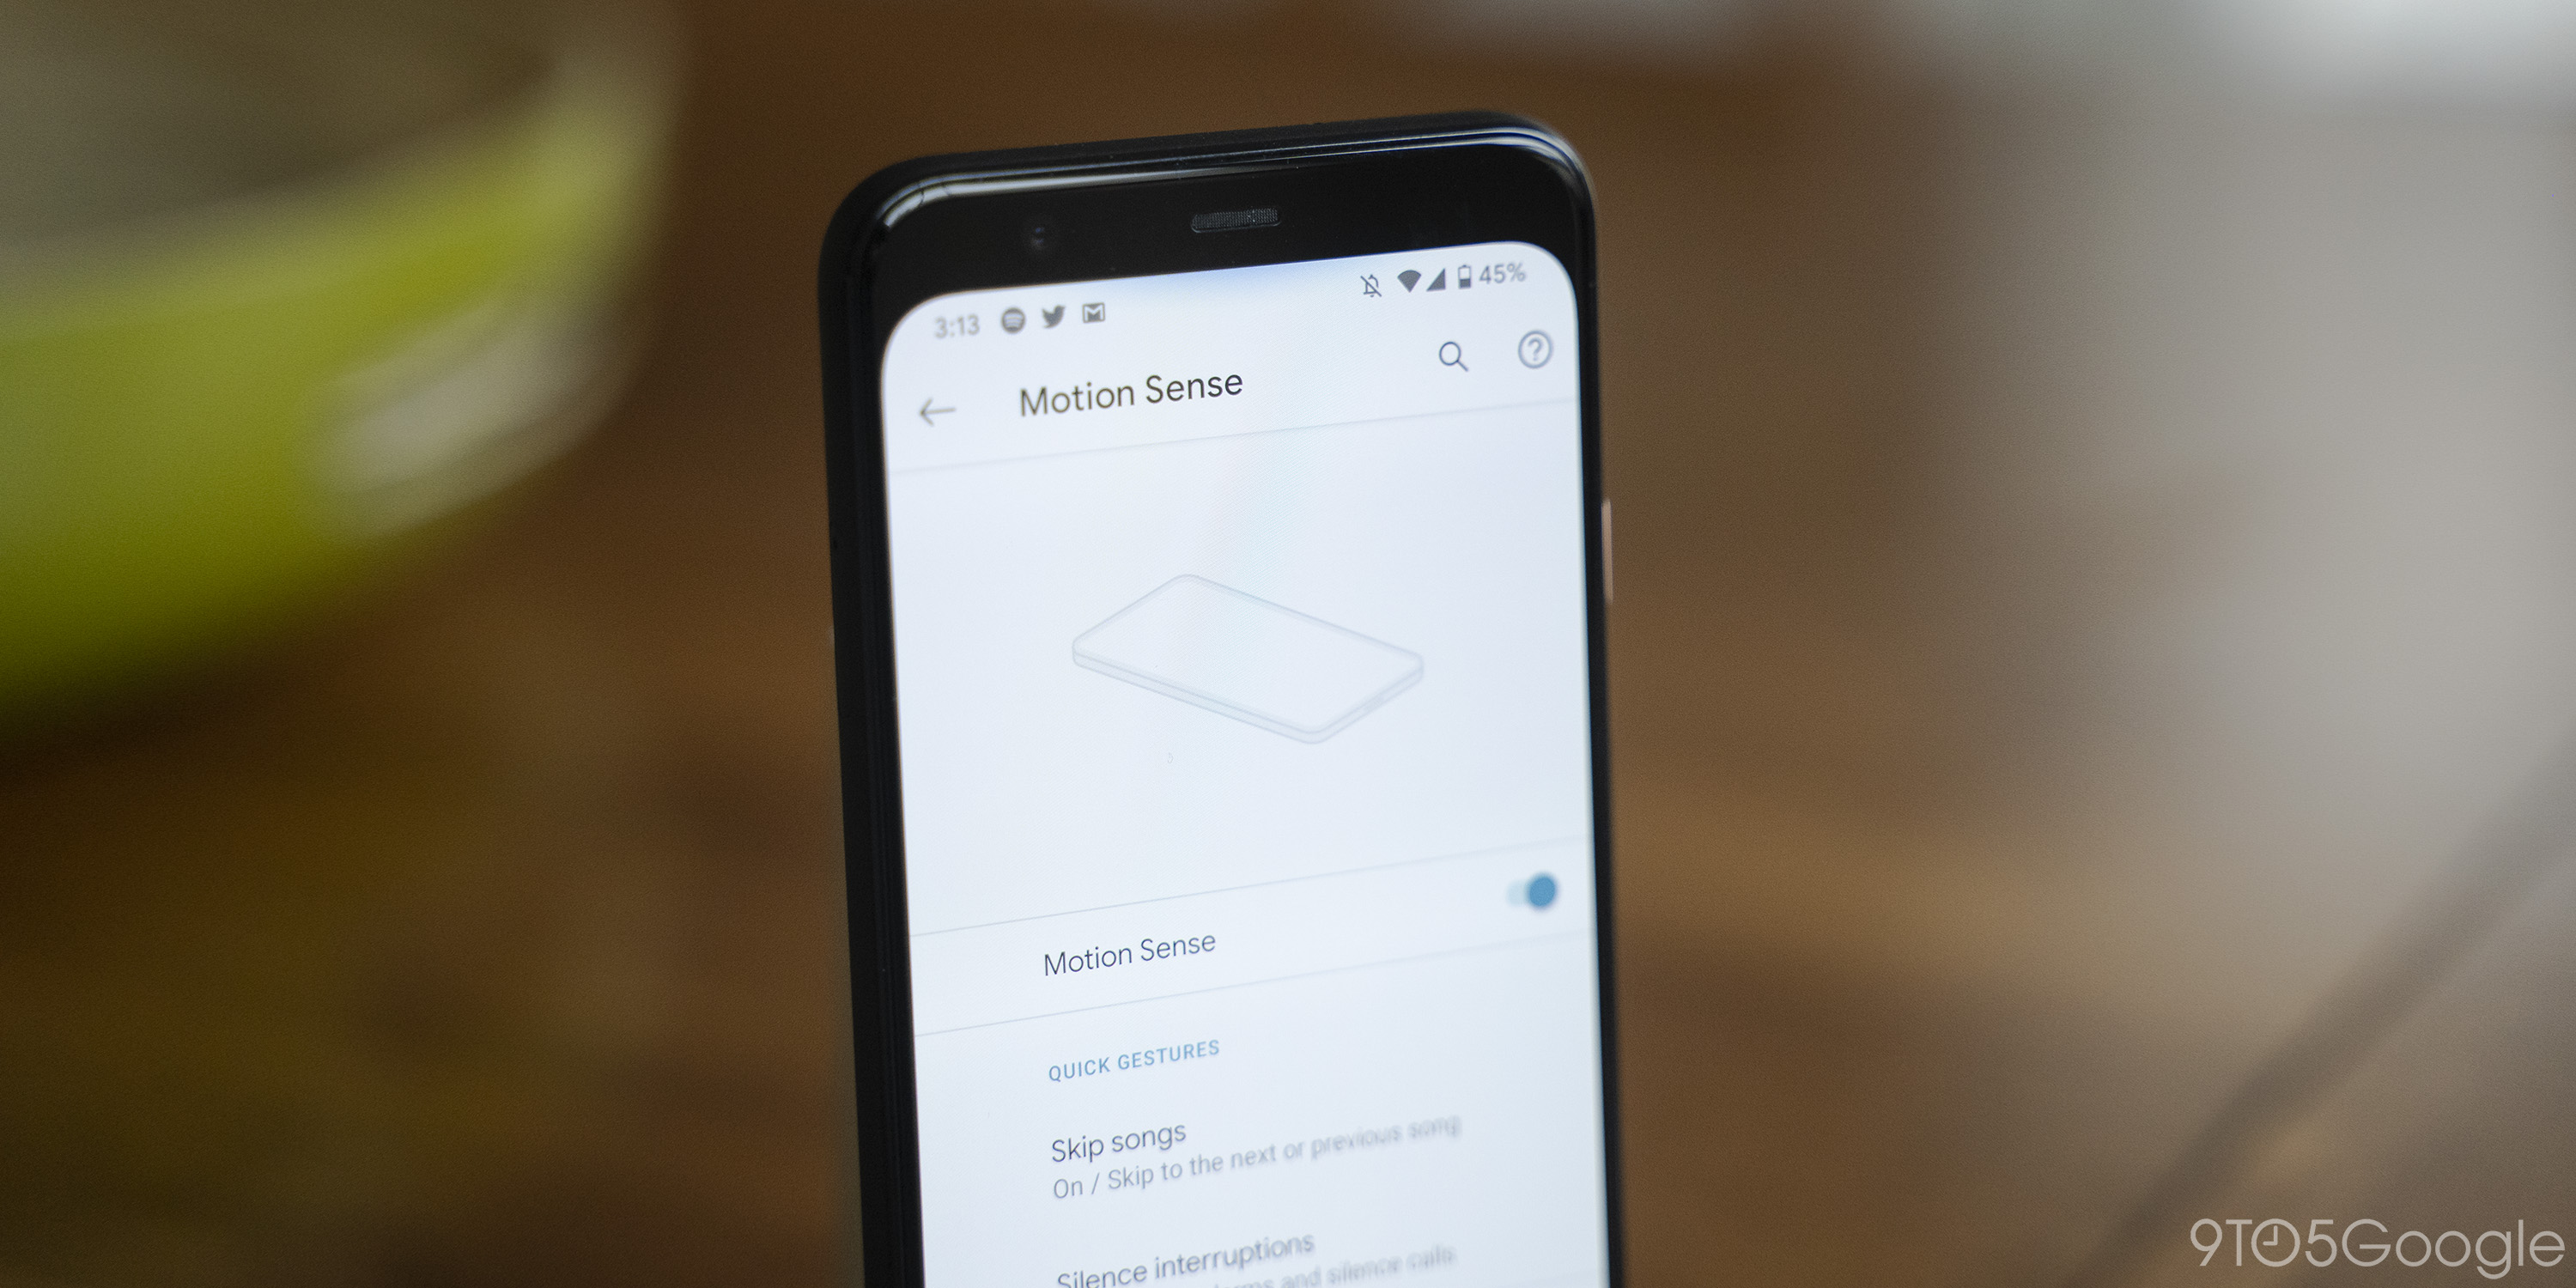 pixel 4 motion sense settings